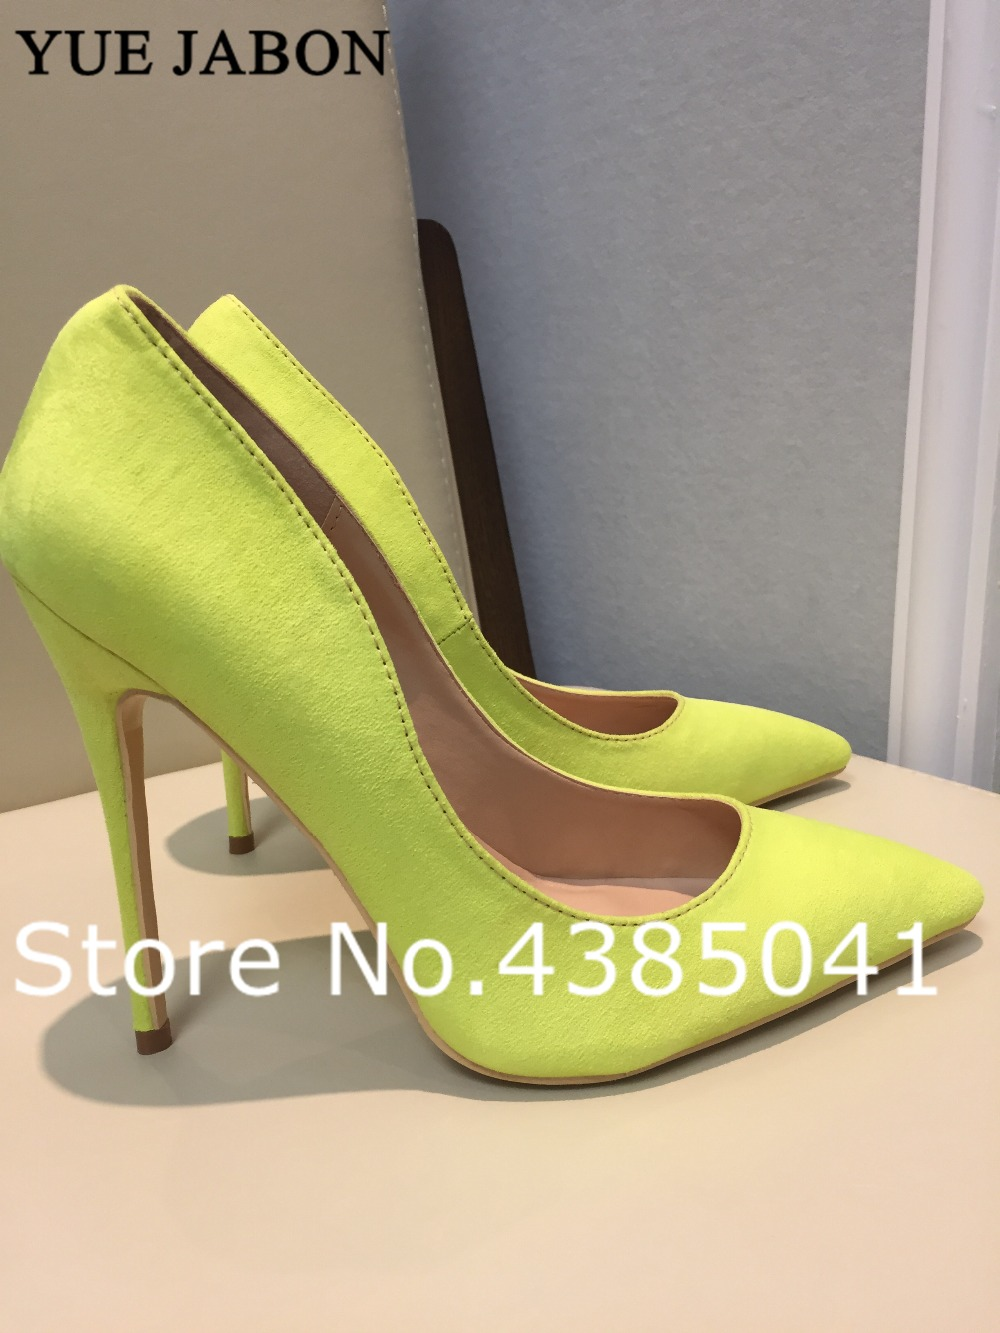 Bright Yellow Matte High Heels Sexy Women Shoes 2019 Suede Pointed Toe Women Pumps Wedding Party